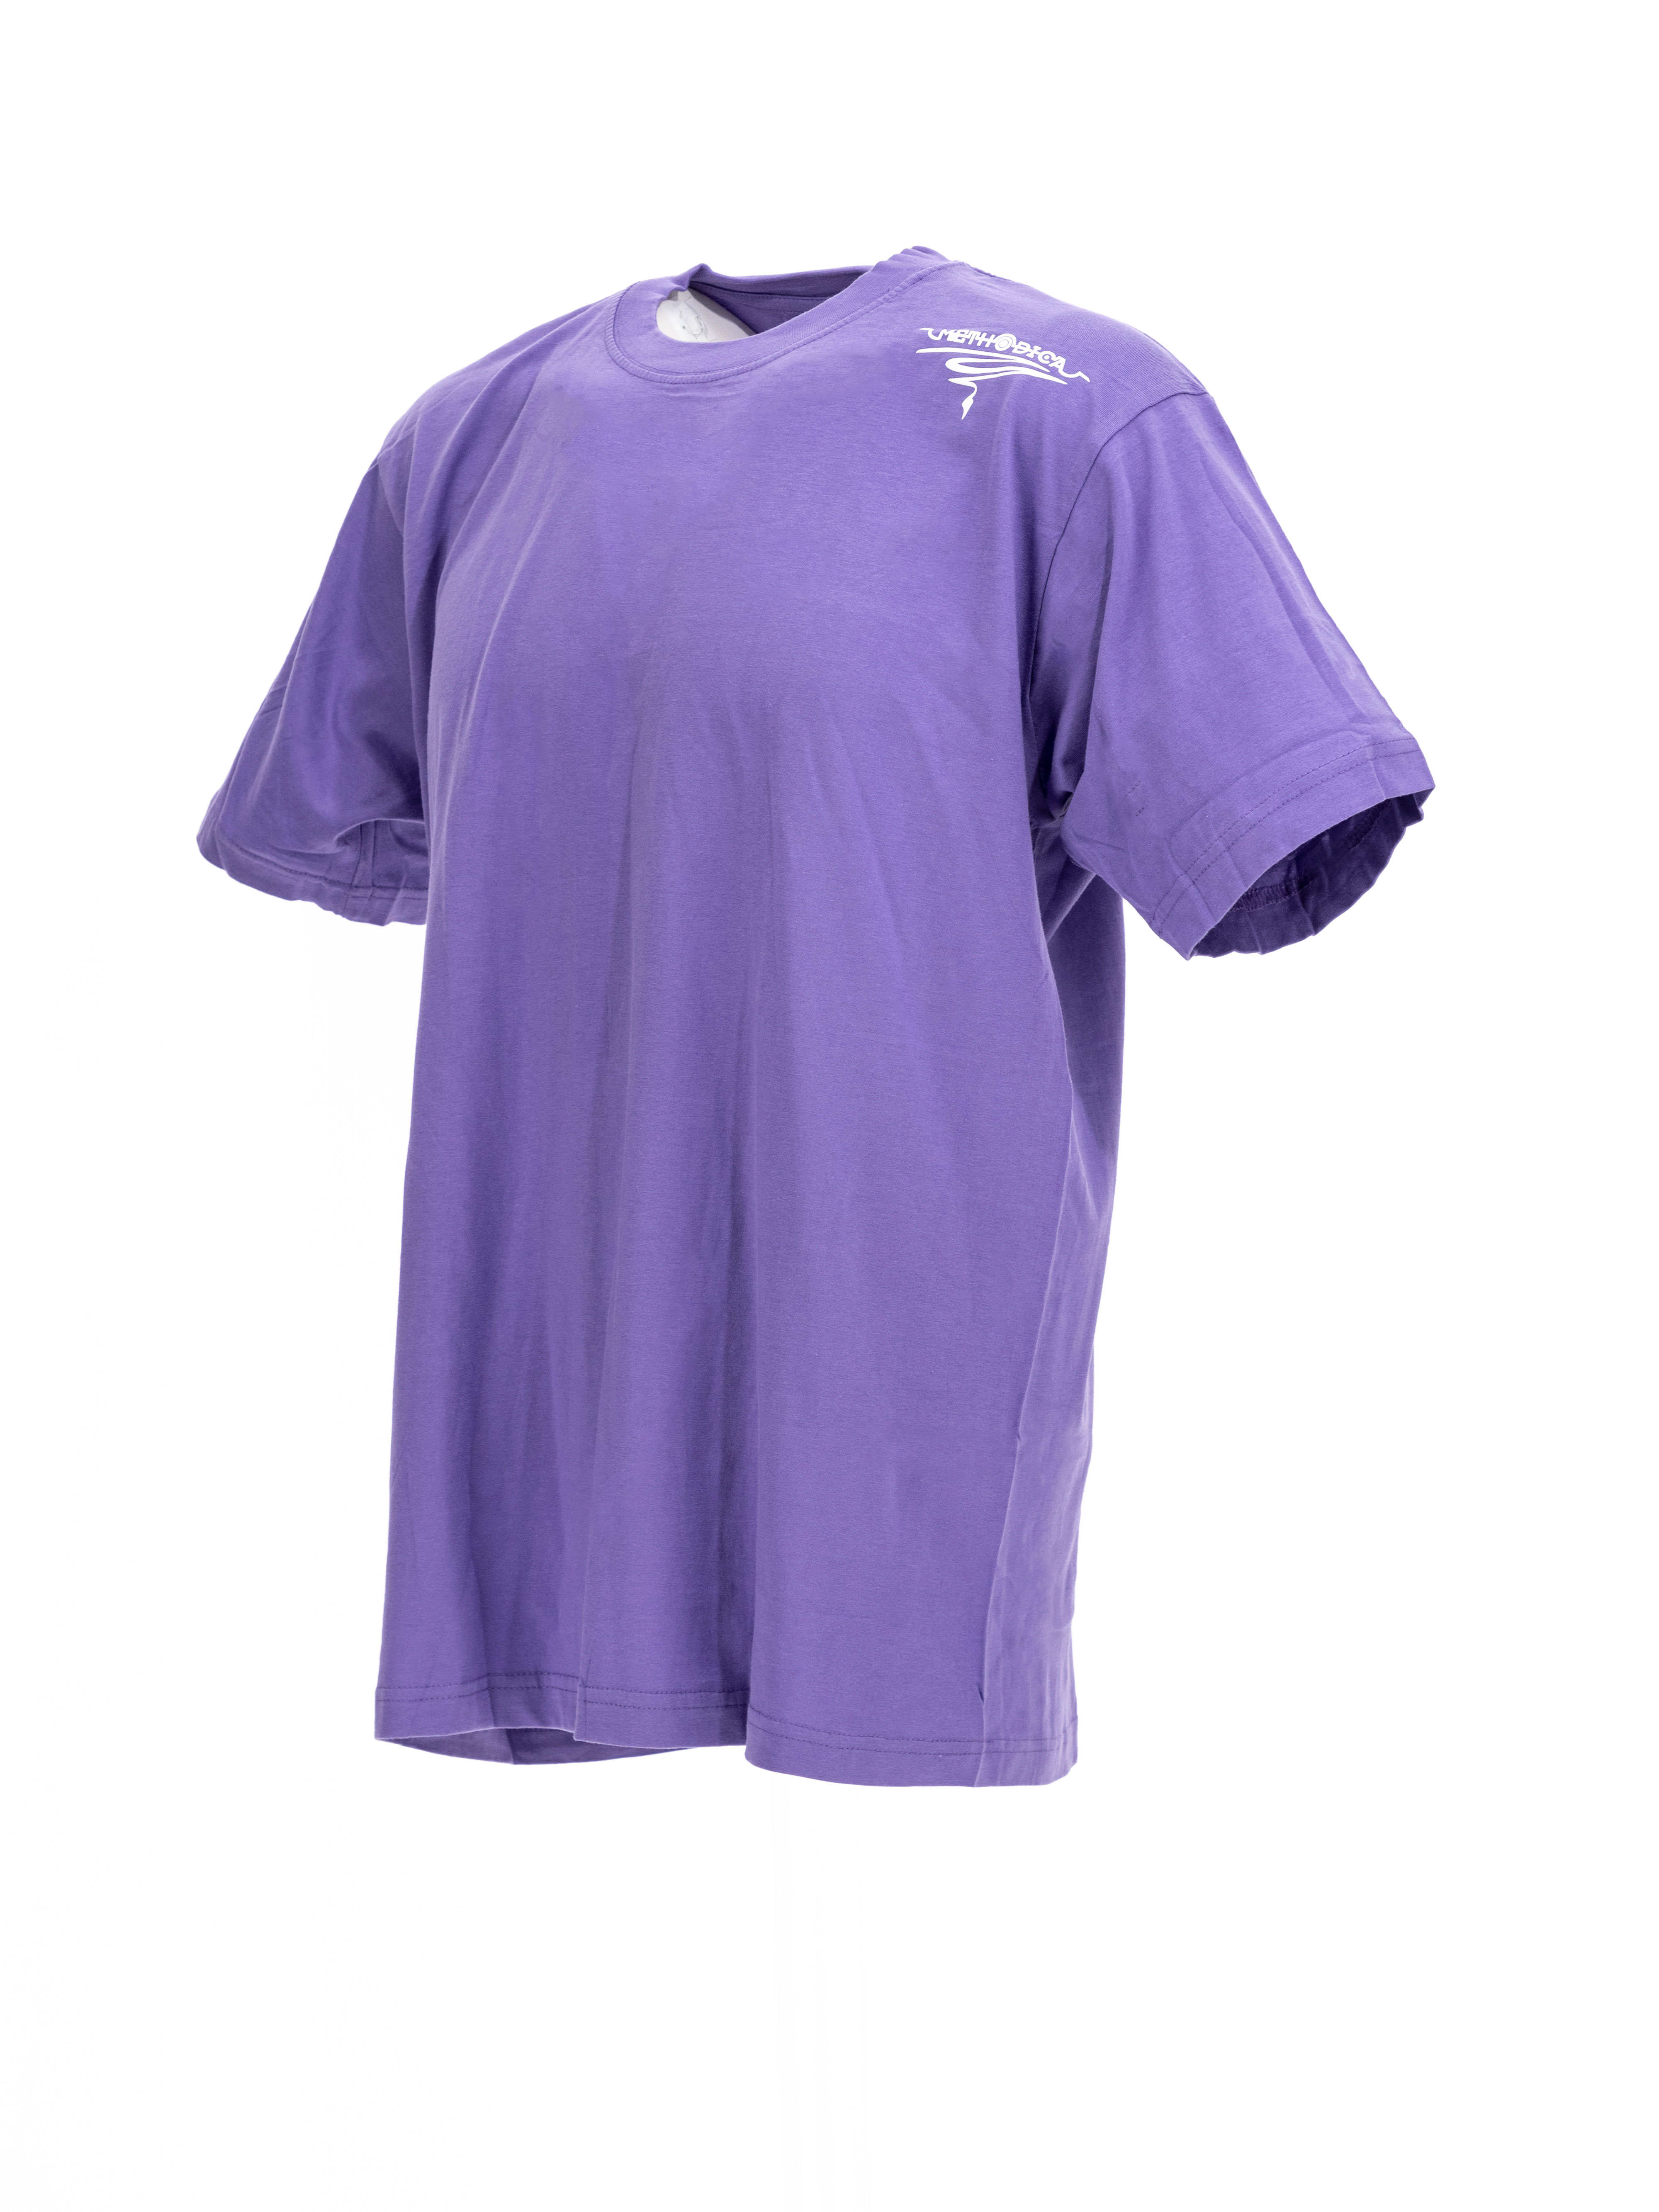 t-shirt SEARCHING FOR REFLECTIONS (unisex) - violet